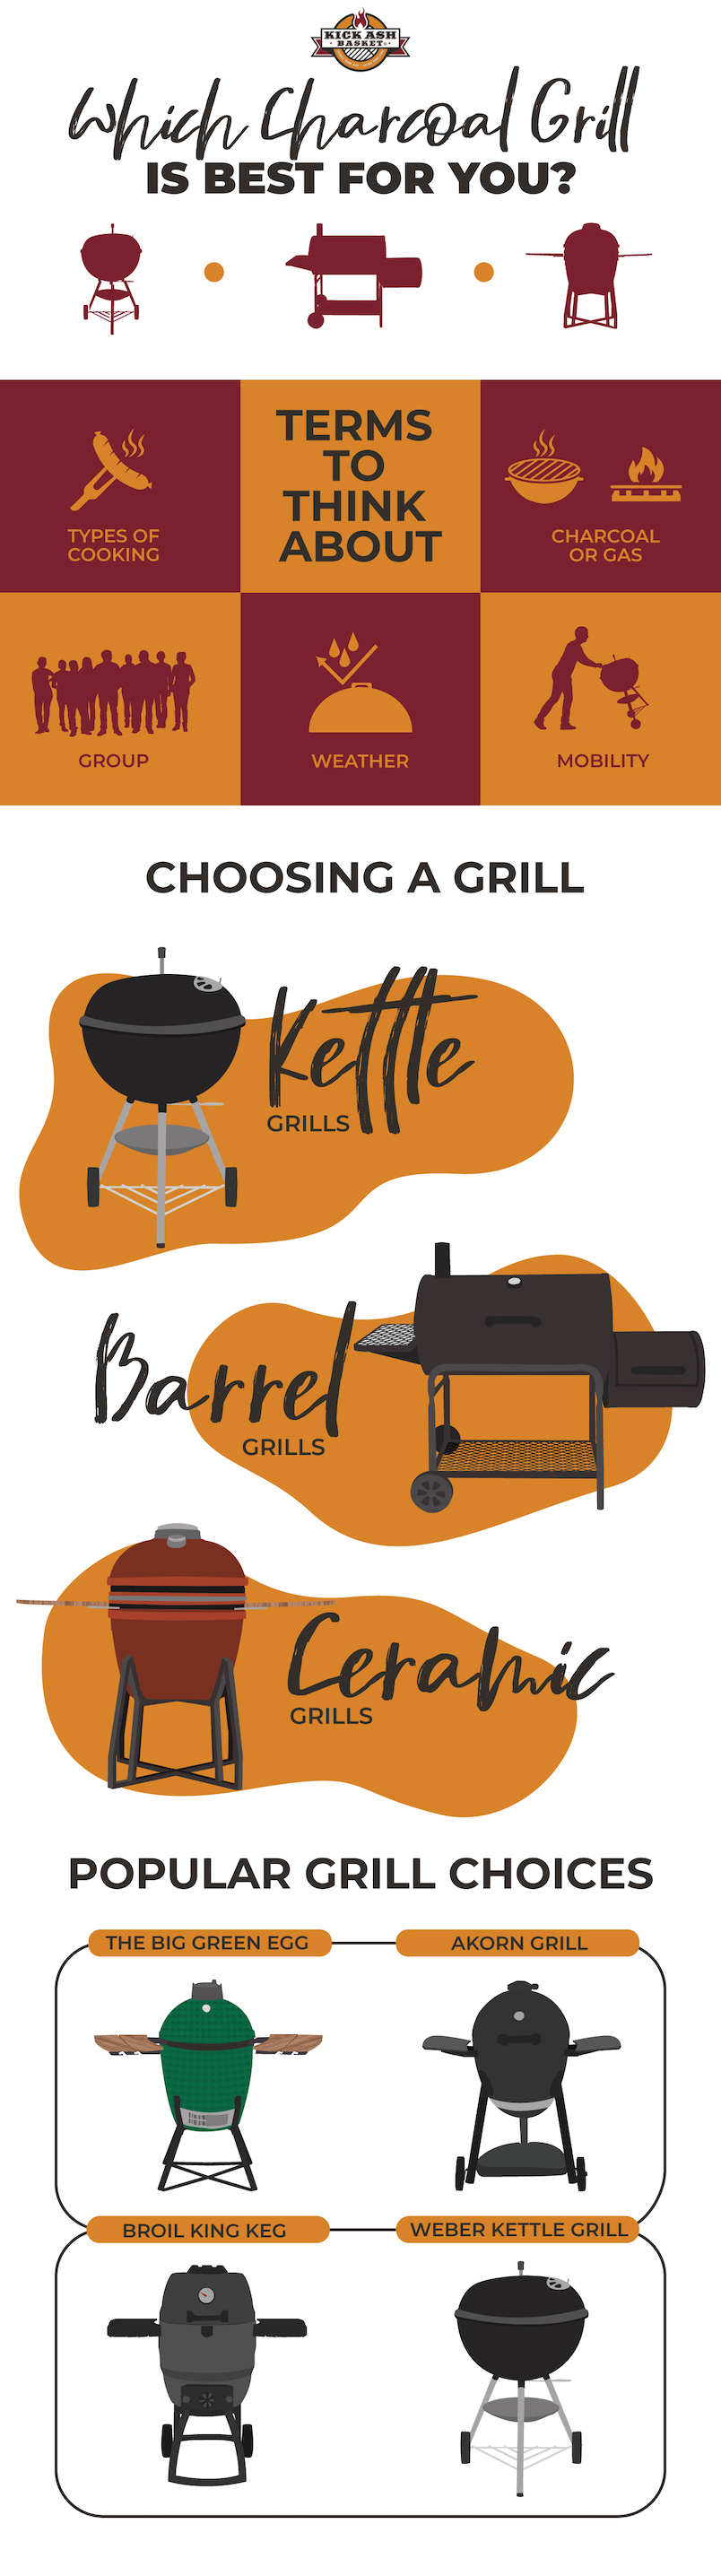 guide on popular choices for charcoal grills